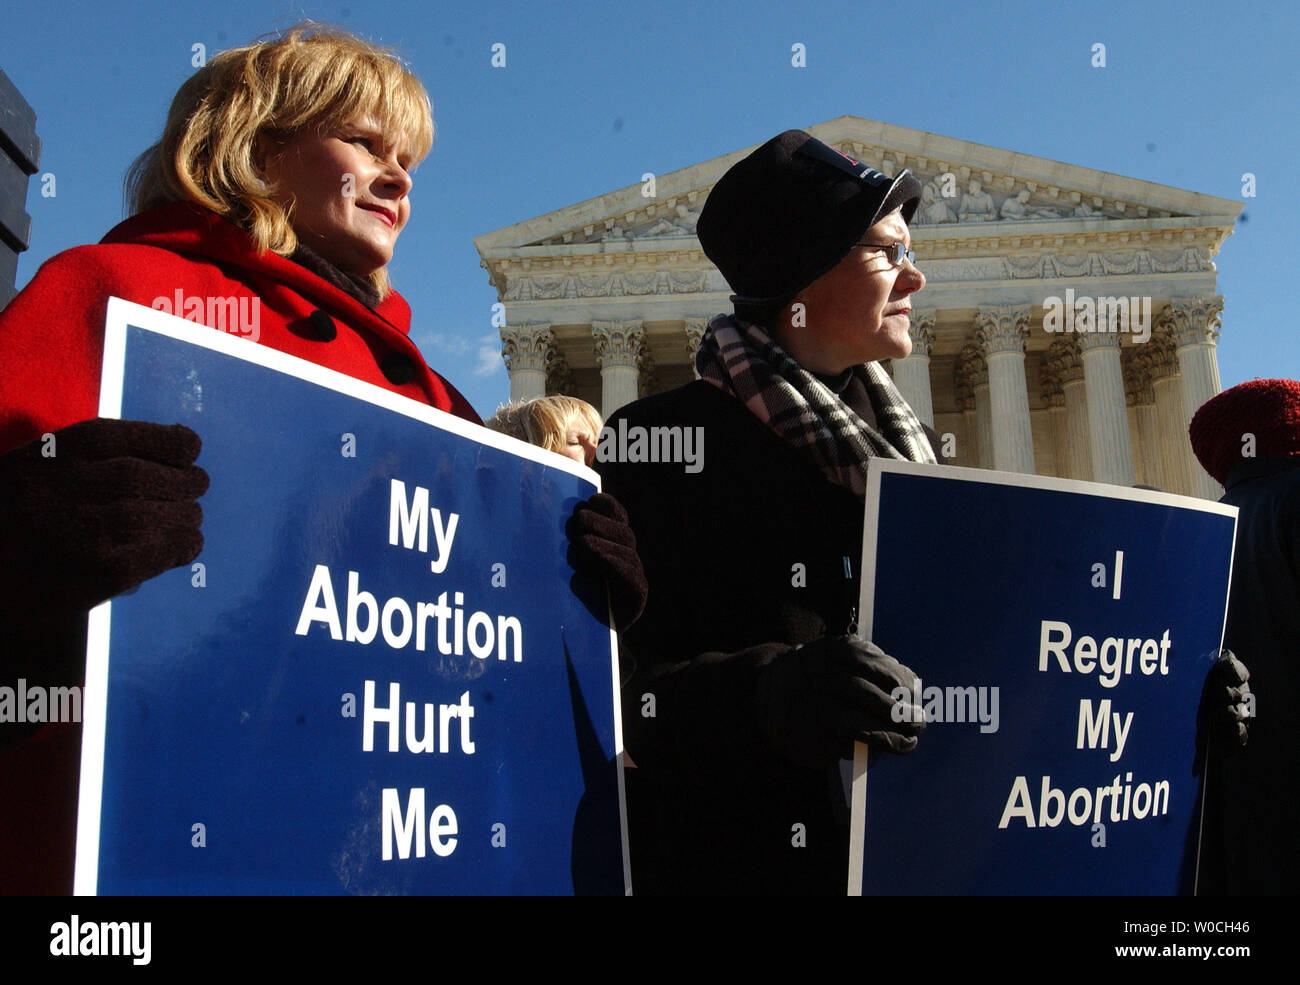 Joyce Zounis (l) and Millie Lace, who have had abortions and regret them, participate in a news conference in front of the Supreme Court, urging the court to vacate the Roe v. Wade decision and allow states to set abortion policy on Jan. 18, 2005, in Washington. (UPI Photo/Roger L. Wollenberg) Stock Photo